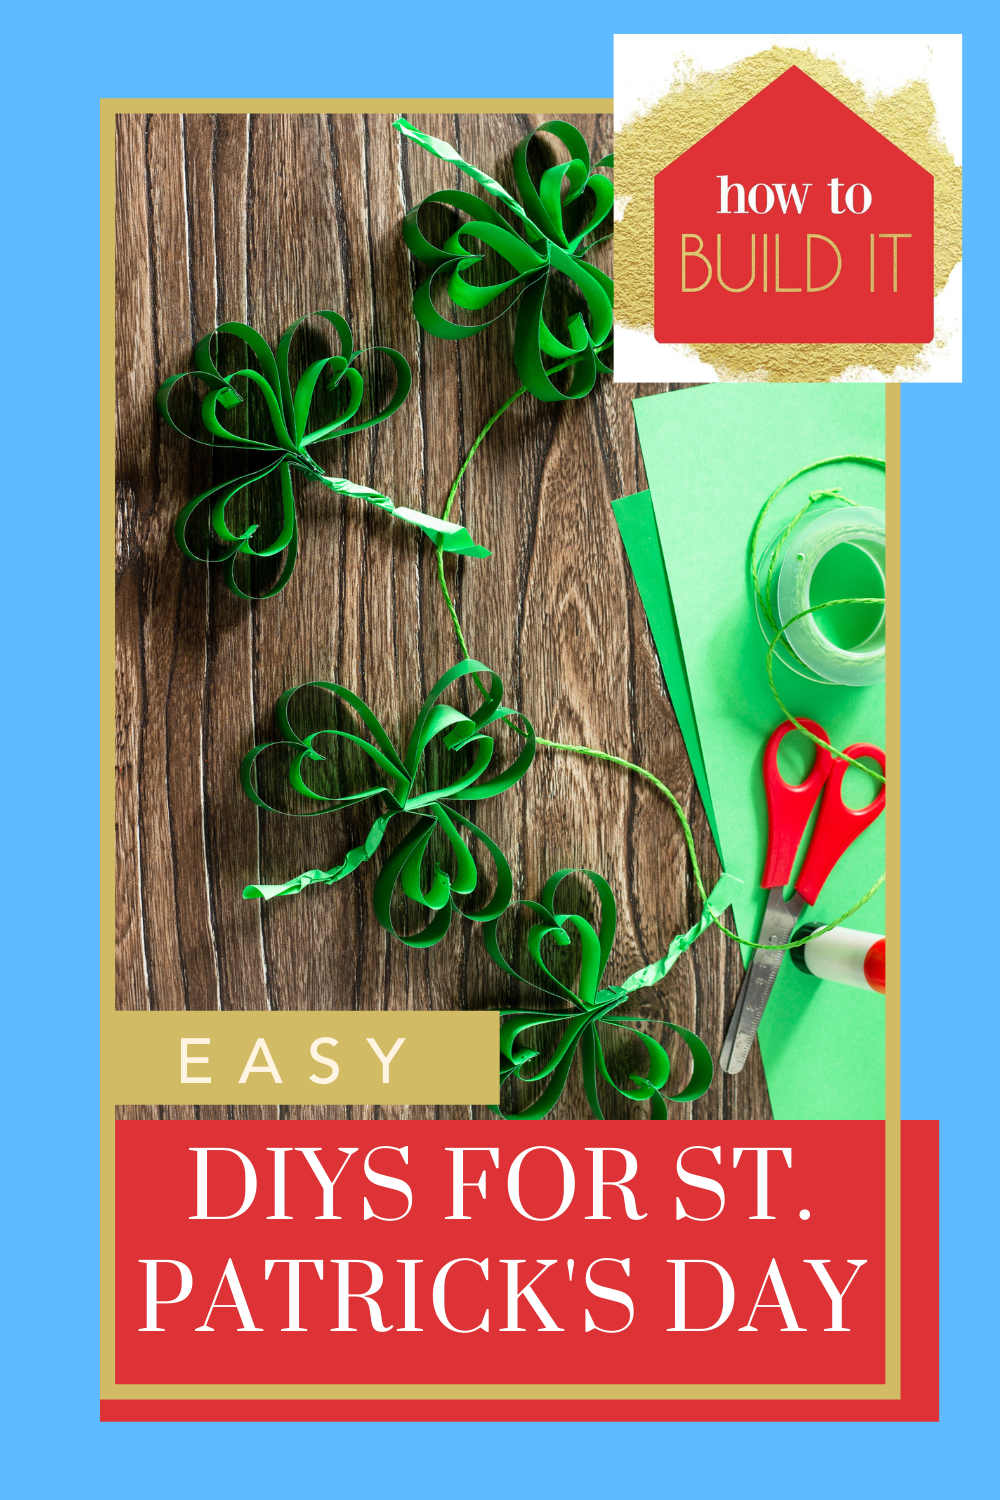 Howtobuildit.org is all about making things with your own two hands. Check out loads of simple DIYs you'll have a blast making. These DIY projects are easy and festive for a fun St. Patrick's Day celebration!